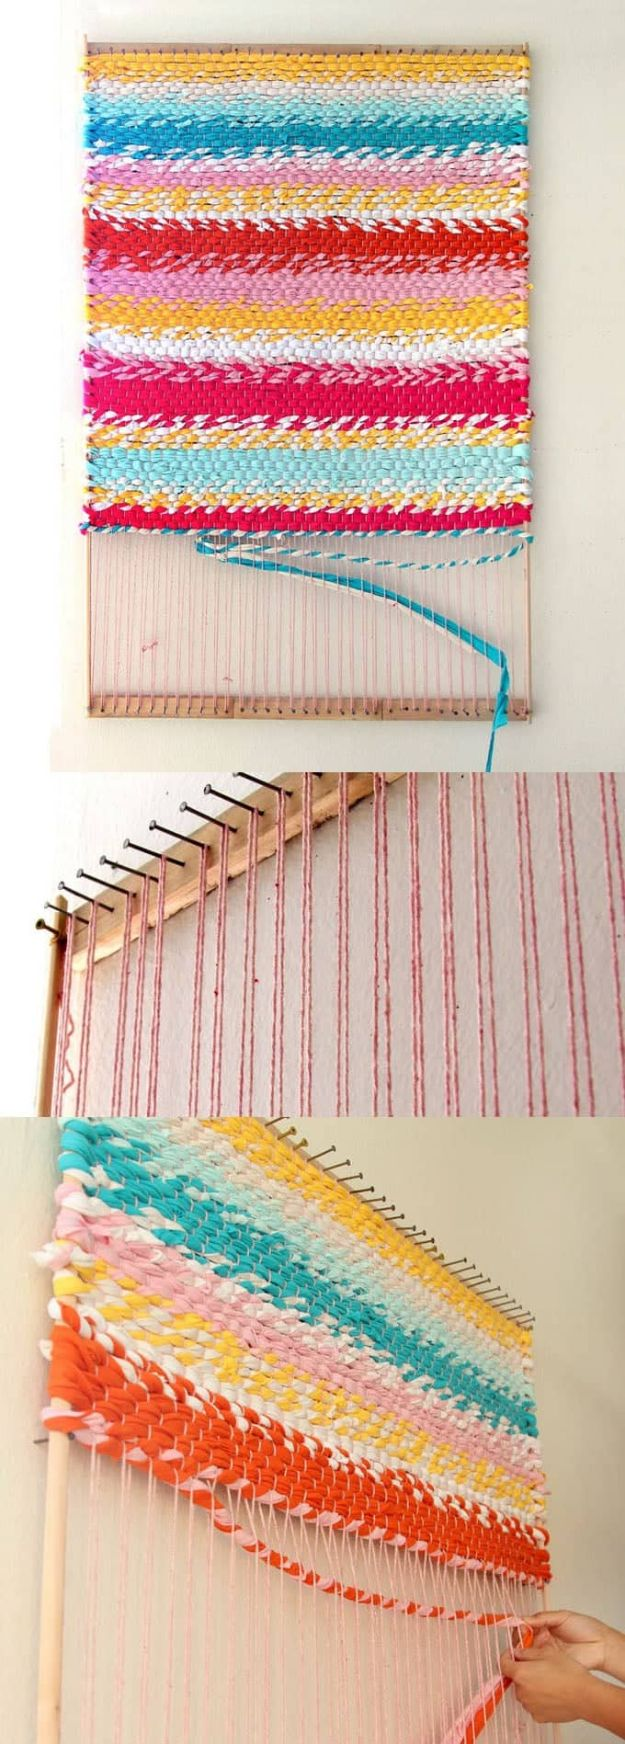 DIY Rugs - Weave A T-Shirt Rug With Easy DIY Loom - Ideas for An Easy Handmade Rug for Living Room, Bedroom, Kitchen Mat and Cheap Area Rugs You Can Make - Stencil Art Tutorial, Painting Tips, Fabric, Yarn, Old Denim Jeans, Rope, Tshirt, Pom Pom, Fur, Crochet, Woven and Outdoor Projects - Large and Small Carpet #diyrugs #diyhomedecor